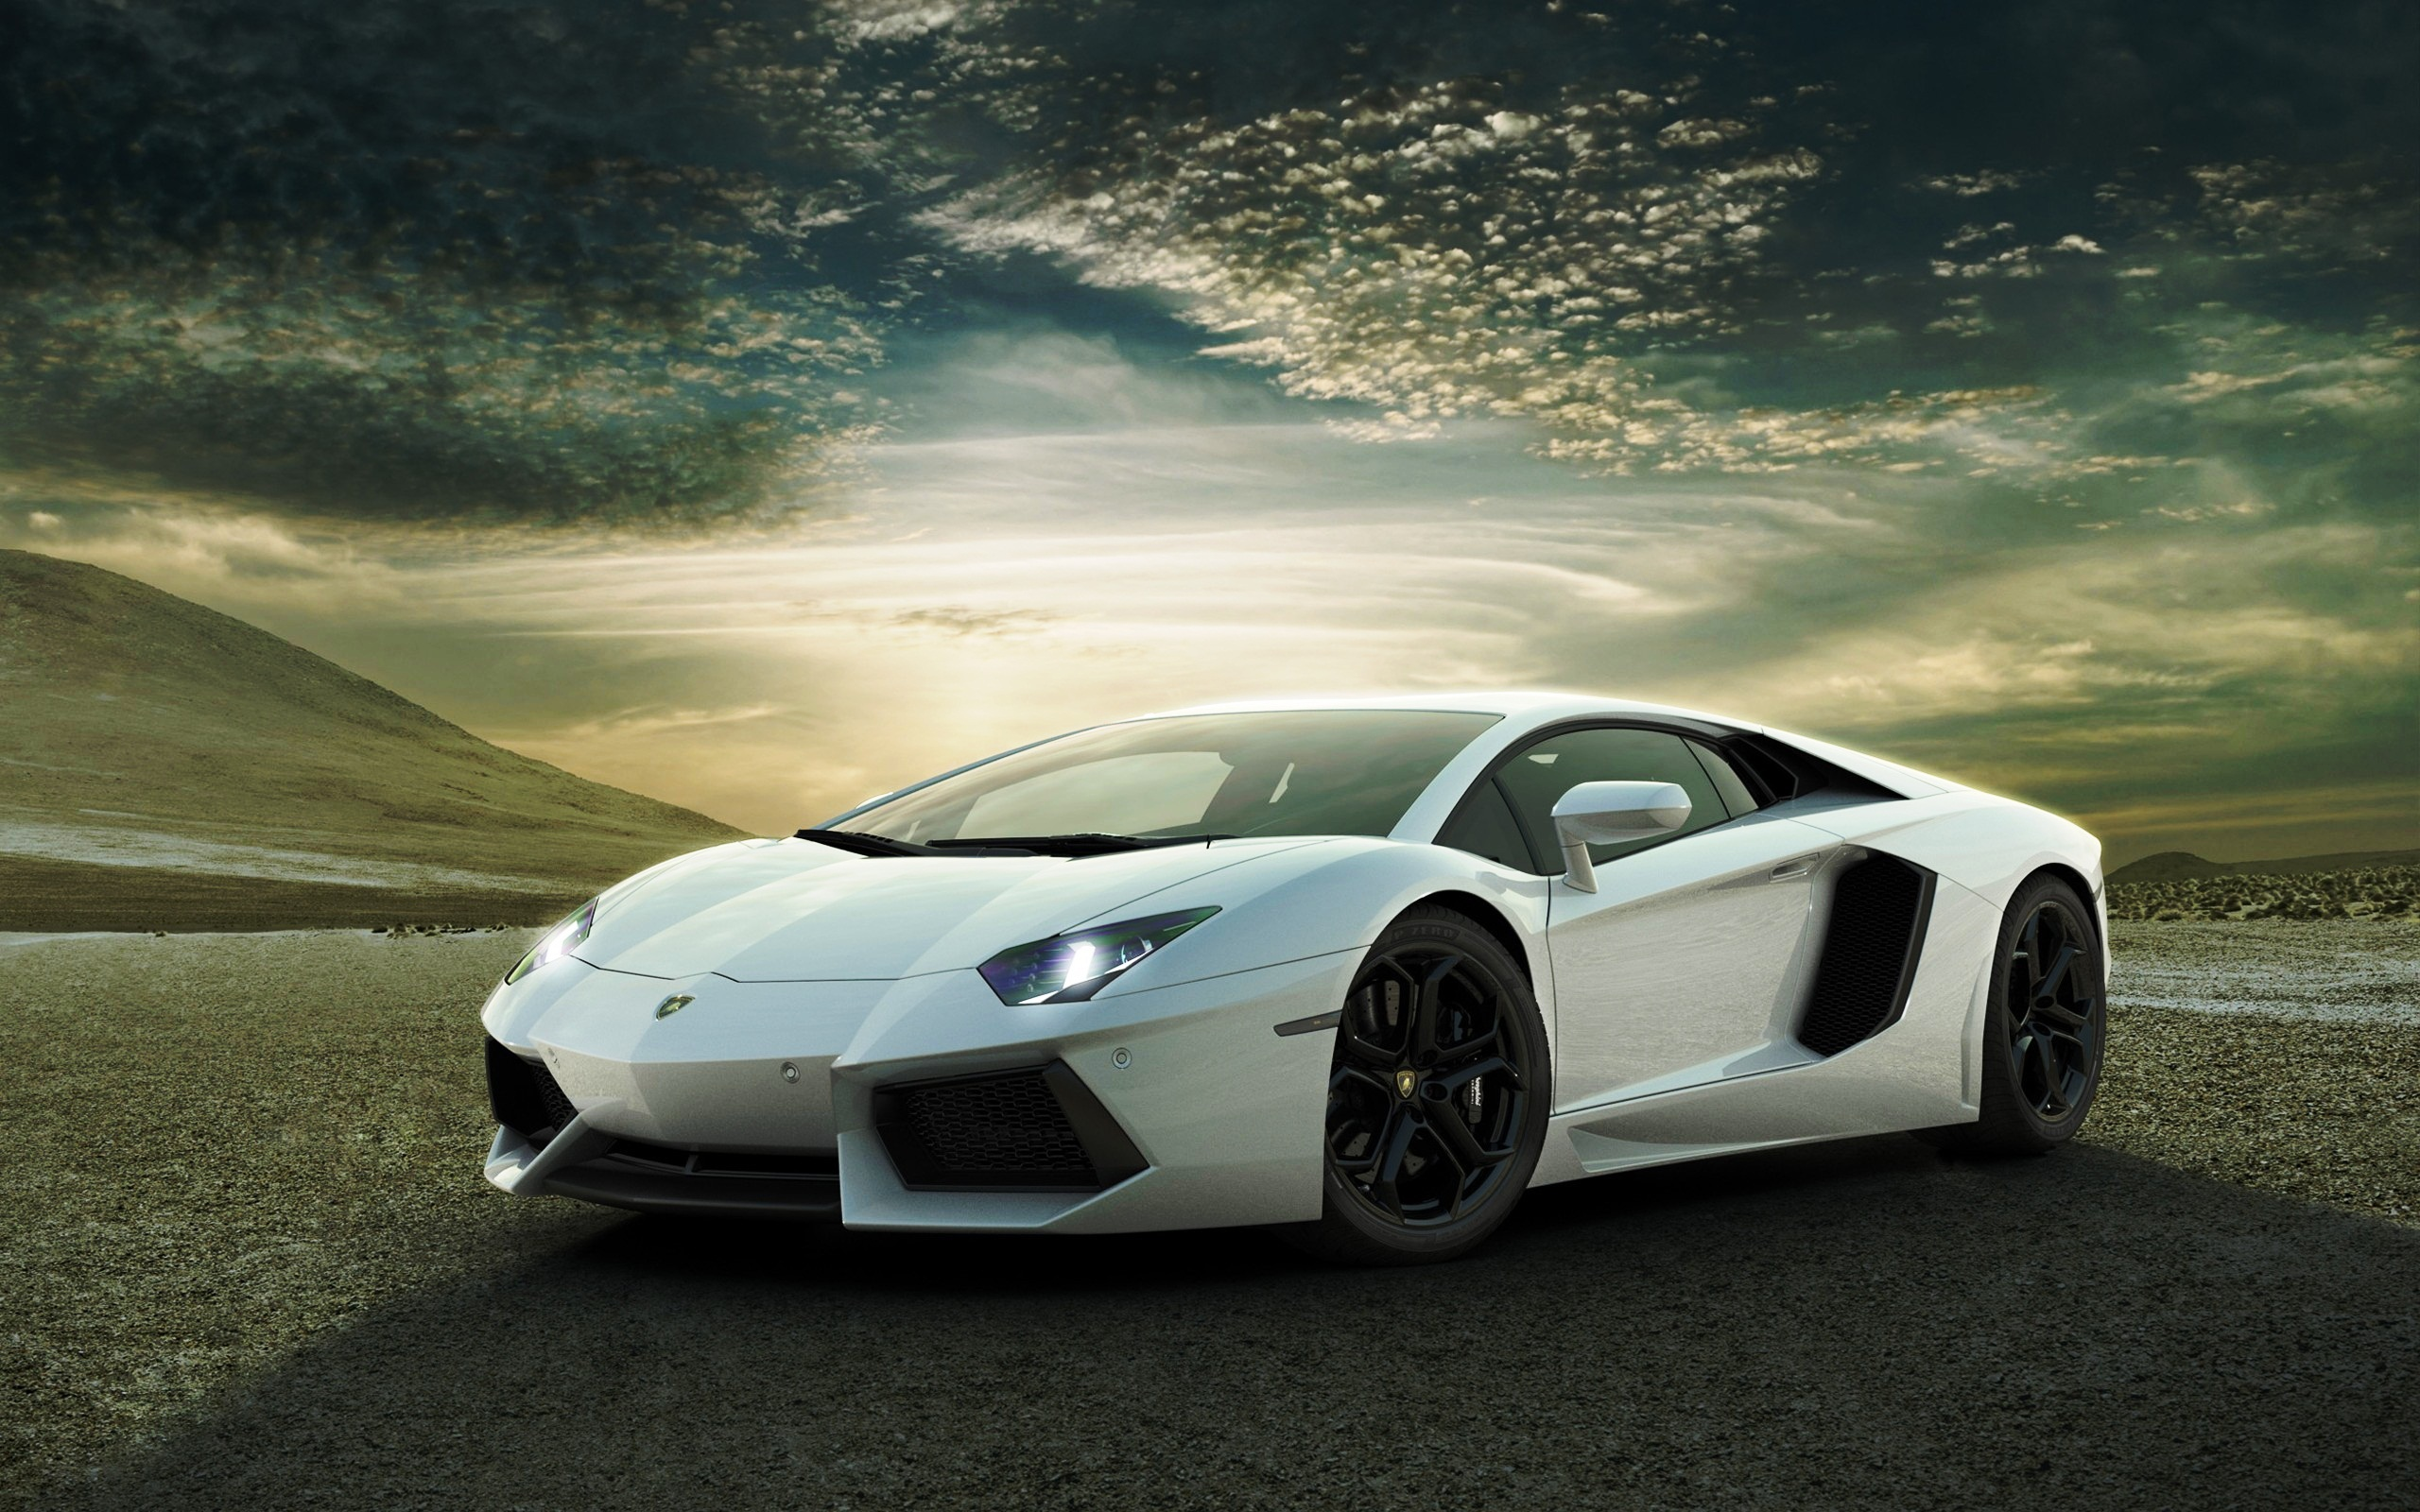 White Lamborghini Aventador Wallpapers HD Wallpapers 2560x1600